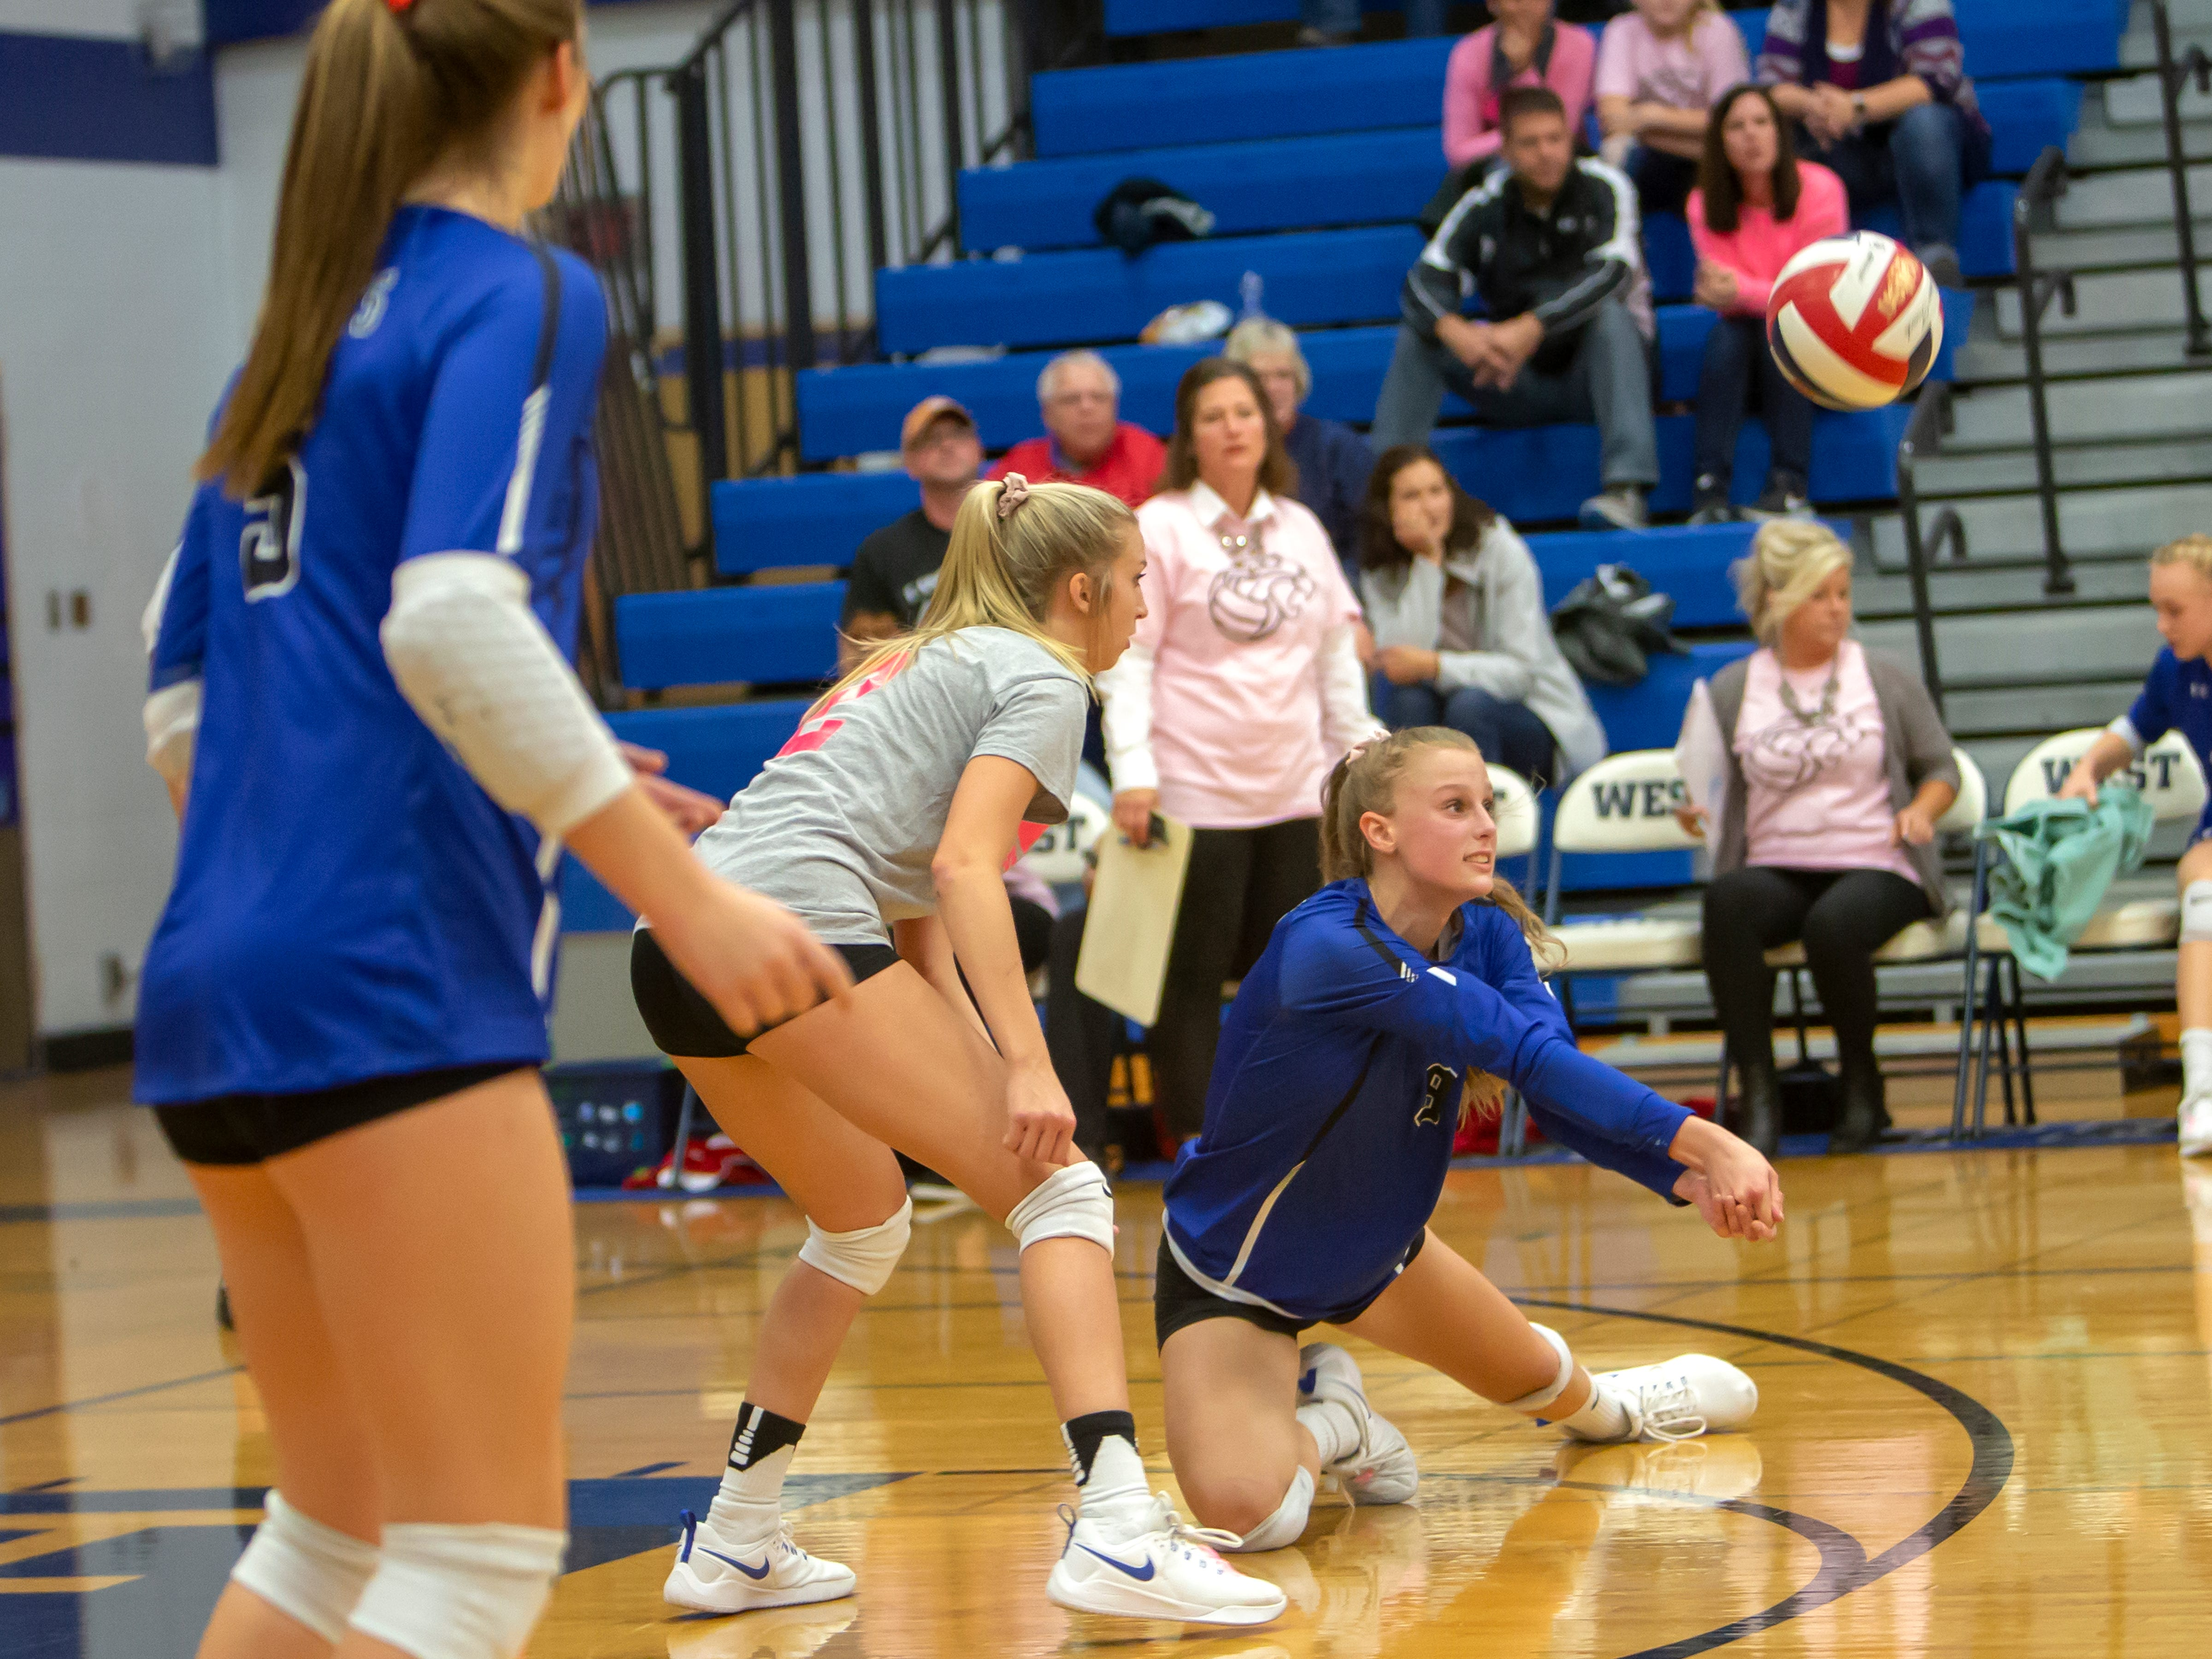 Oshkosh West's Eva Beeth dives for the ball playing at Oshkosh West High School on Thursday, October 11, 2018.